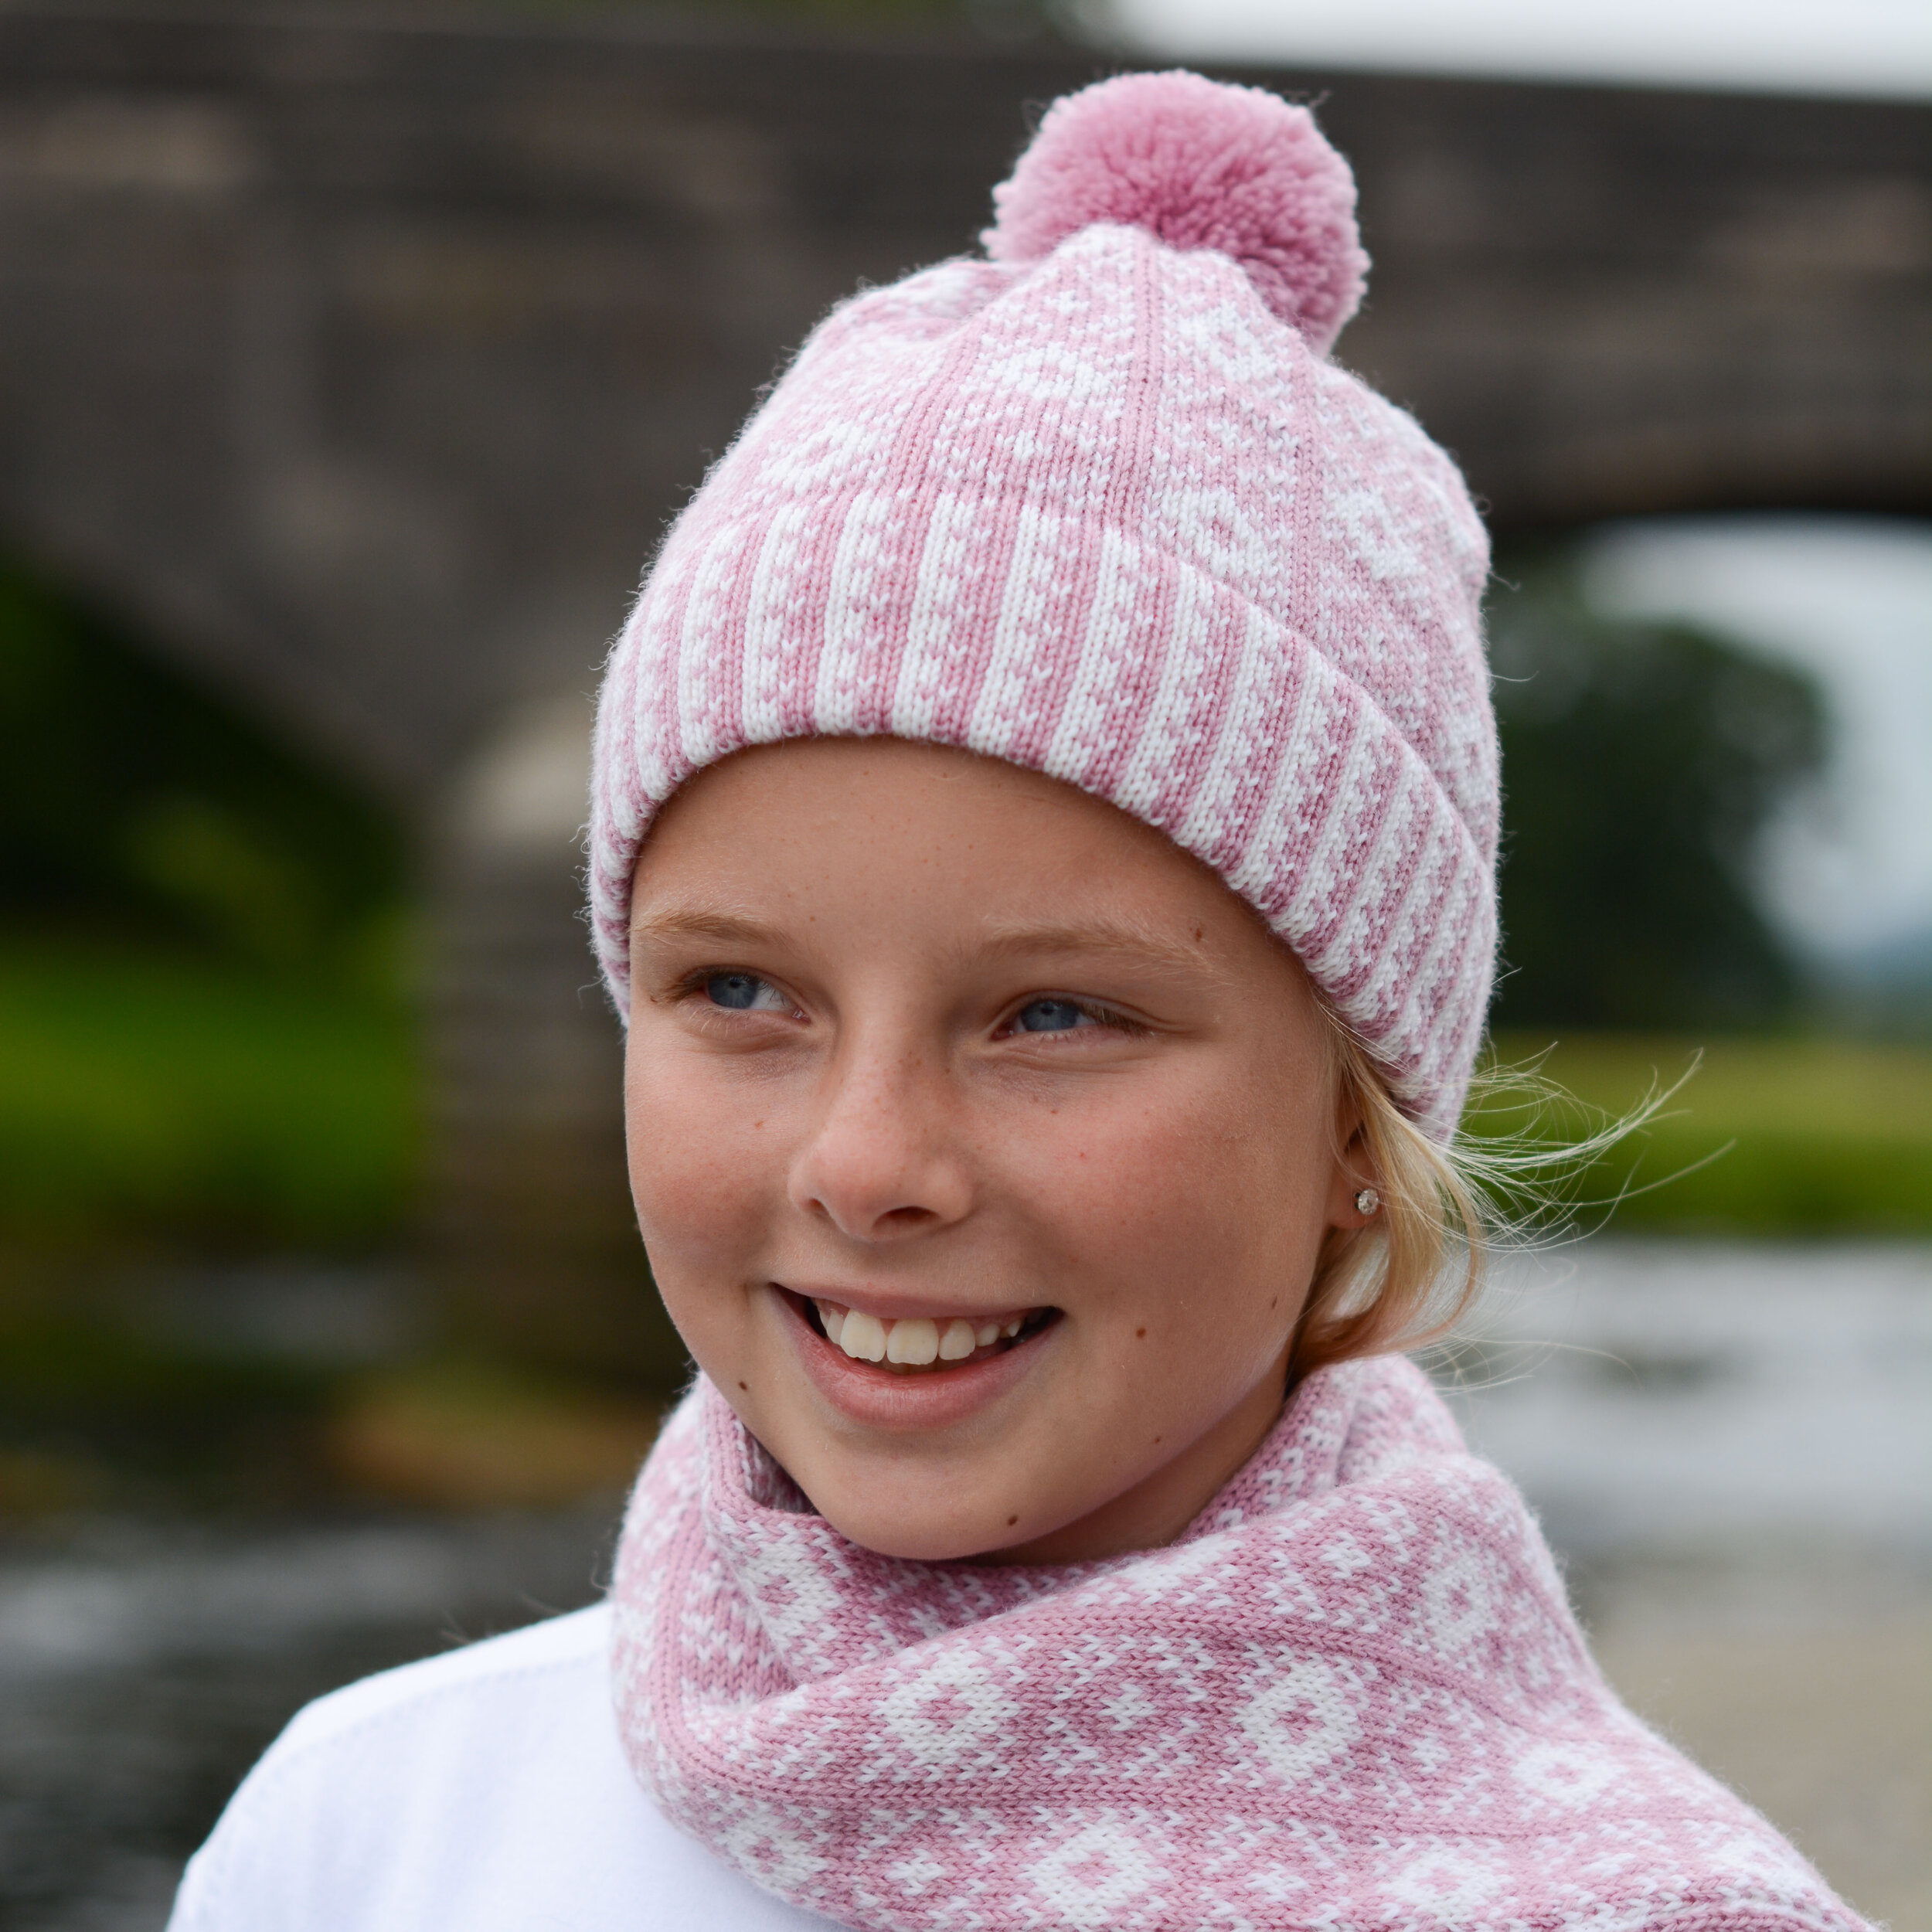 Child hat and scarf in pink and white Rose pattern - made by Sanquhar Pattern Designs